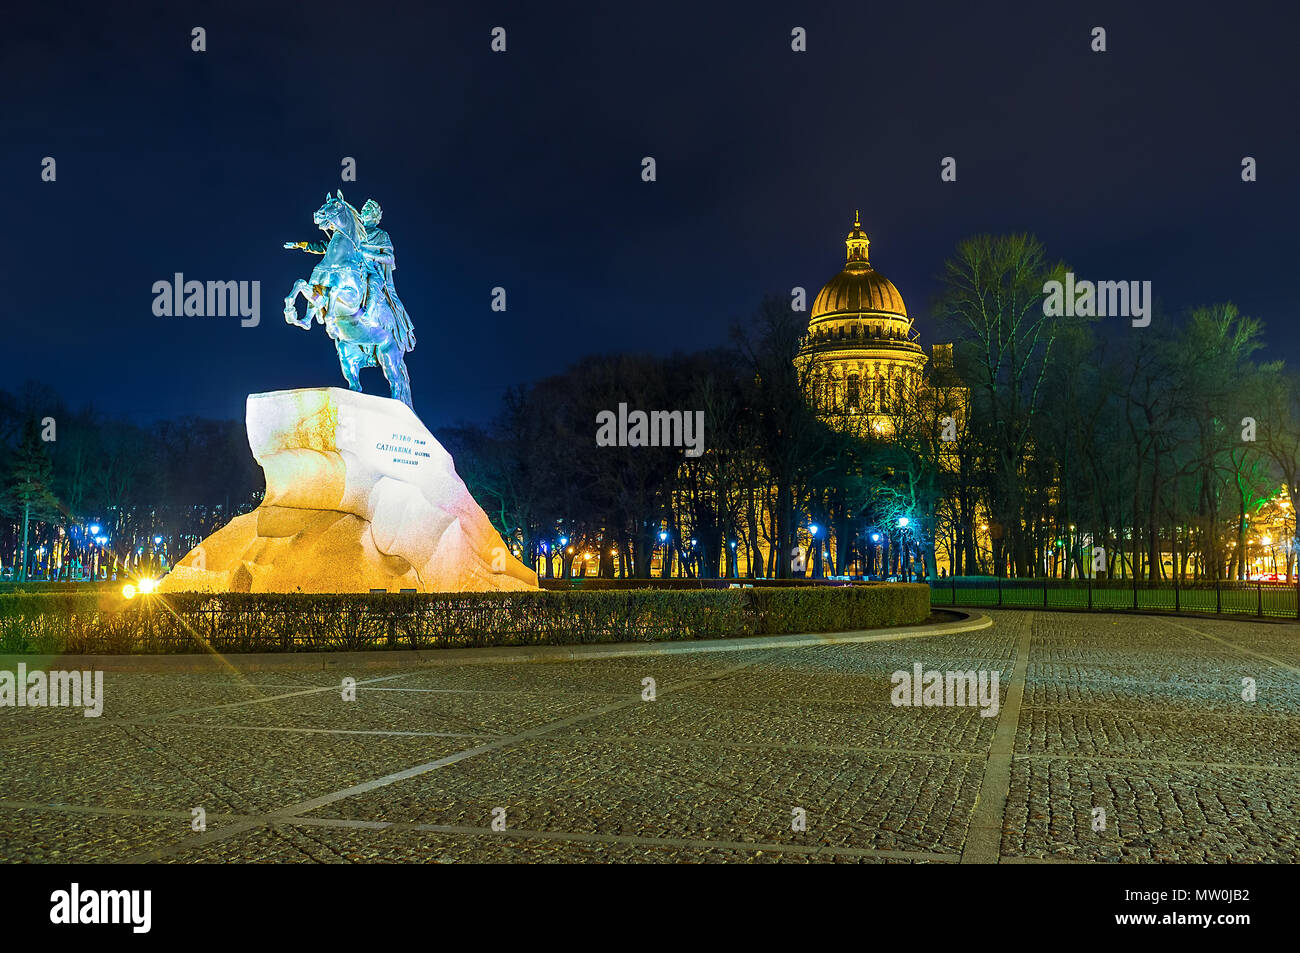 The equestrian statue to Peter The Great is the symbol of Saint Petersburg city, Russia Stock Photo